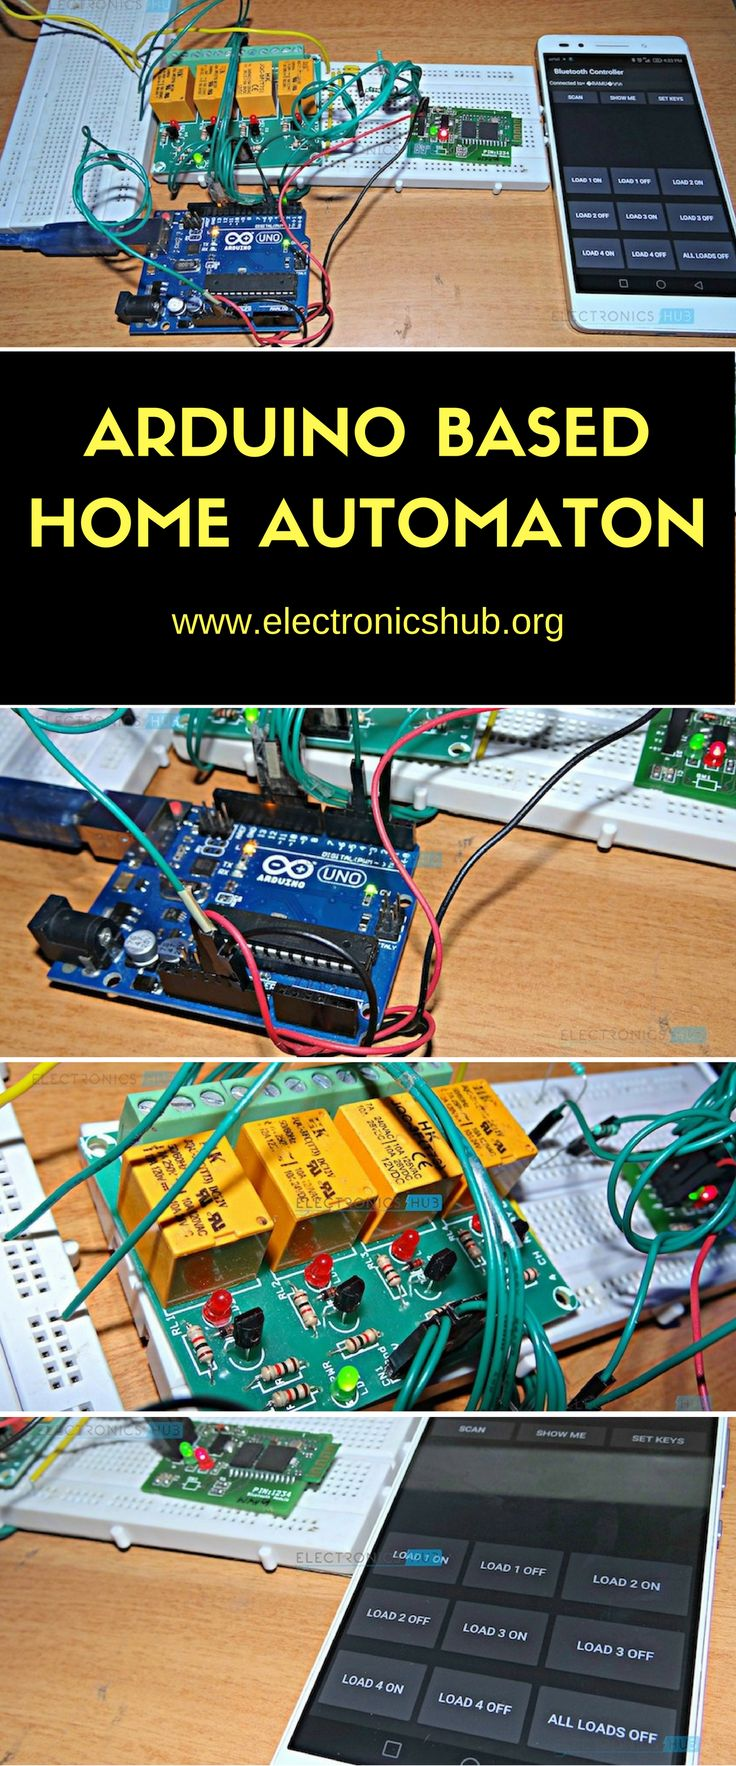 77 Best Arduino Images On Pinterest Craft Diy Electronics And Circuit1 Beginners Guide Avr Programming How To Make Based Home Automation Project Via Bluetooth